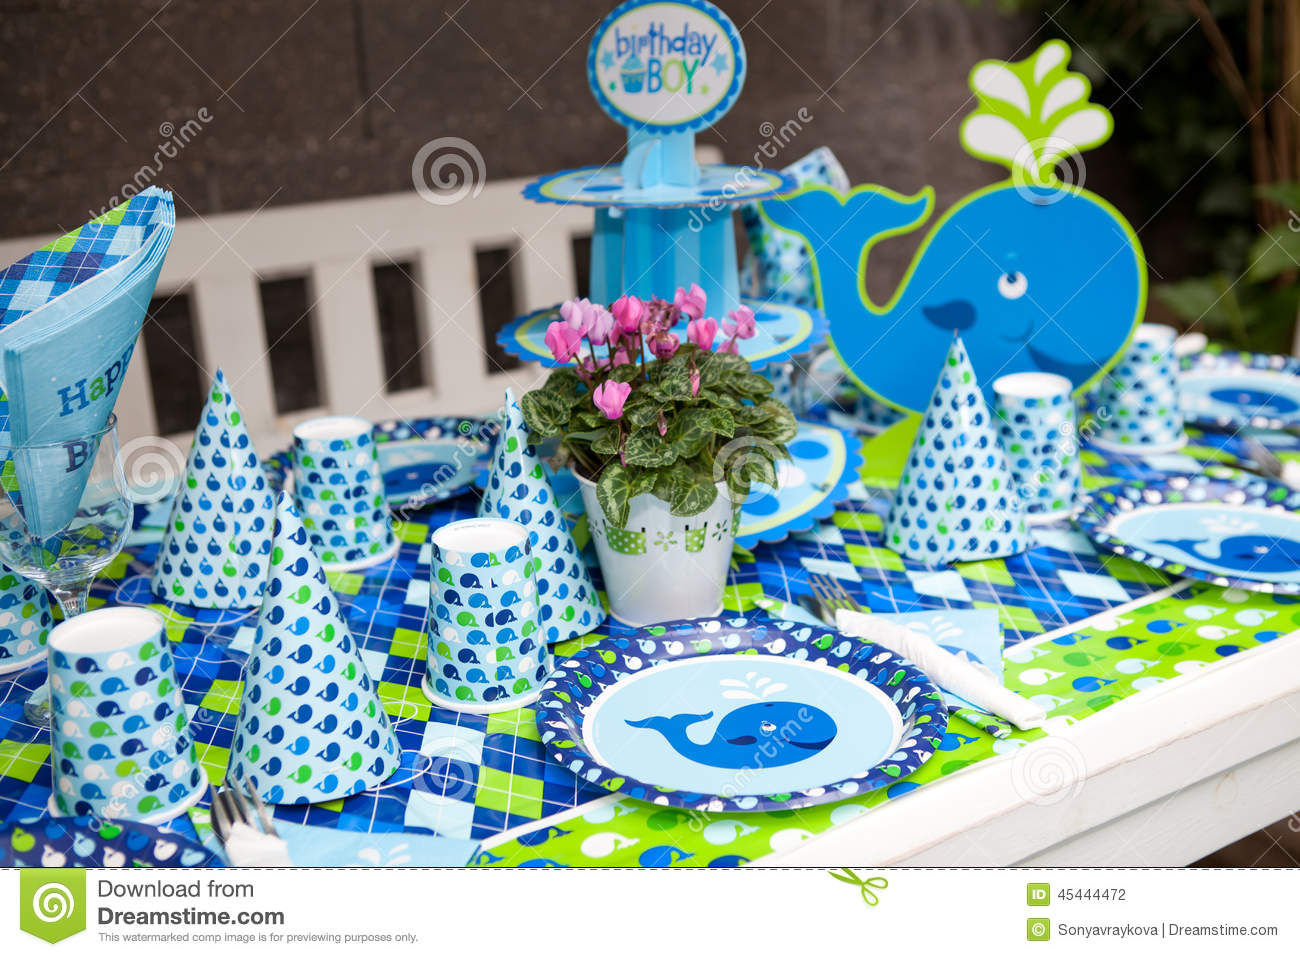 Birthday table decorations boy - Baby Boy First Birthday Party Outdoor Table Set